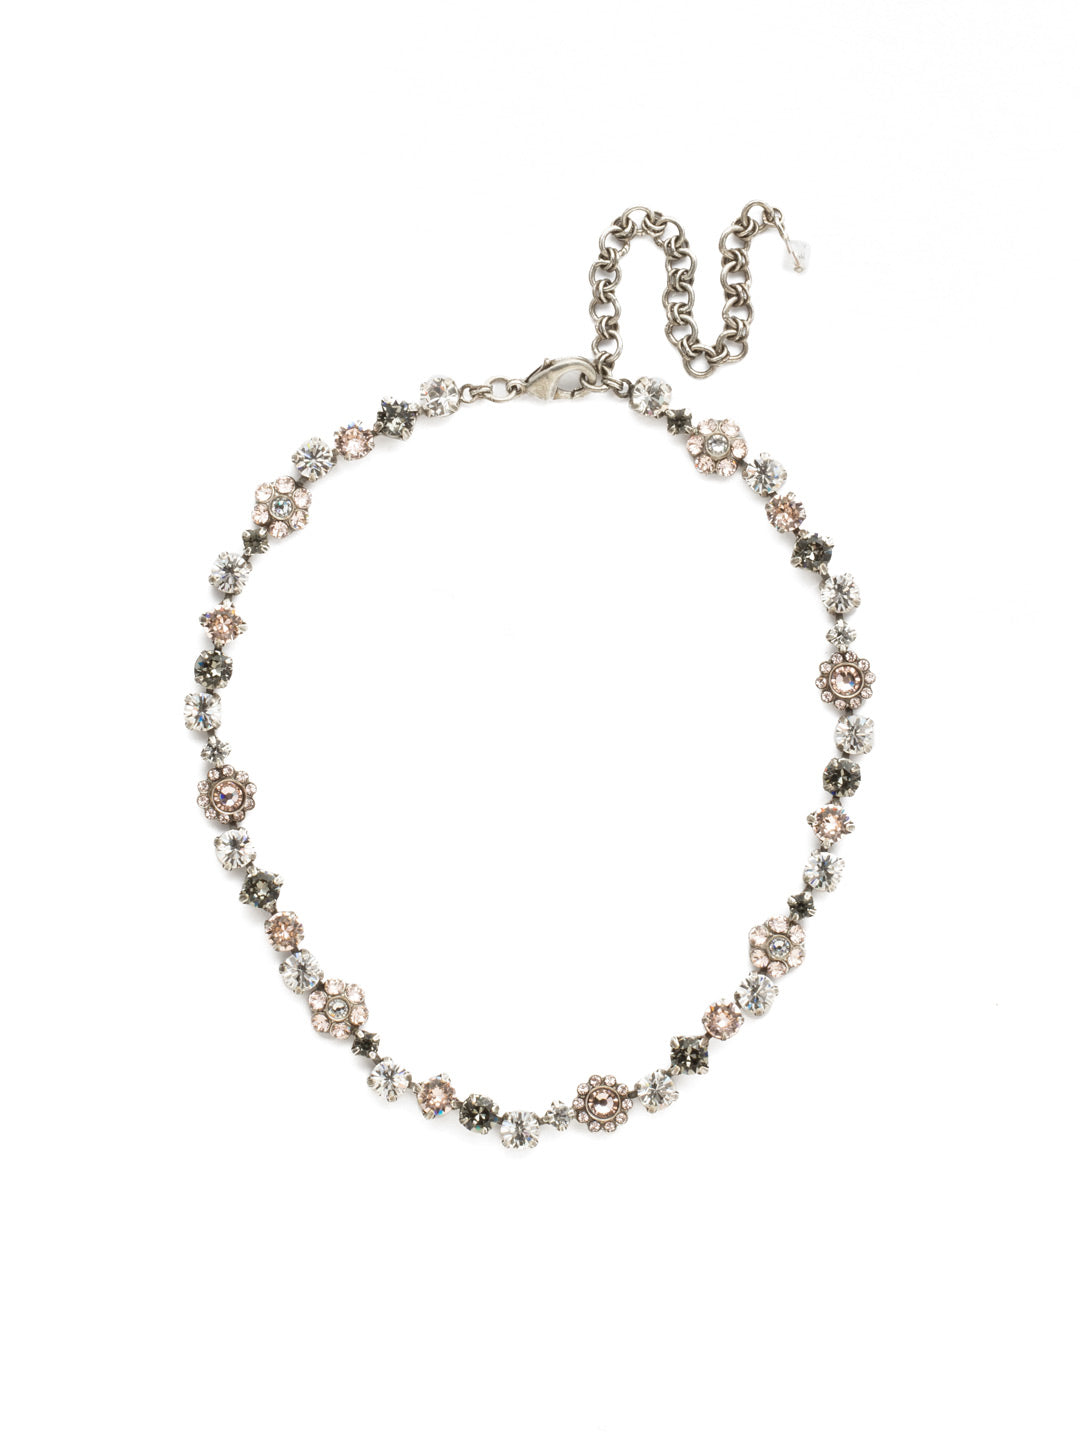 Classic Floral Tennis Necklace - NBE2ASSNB